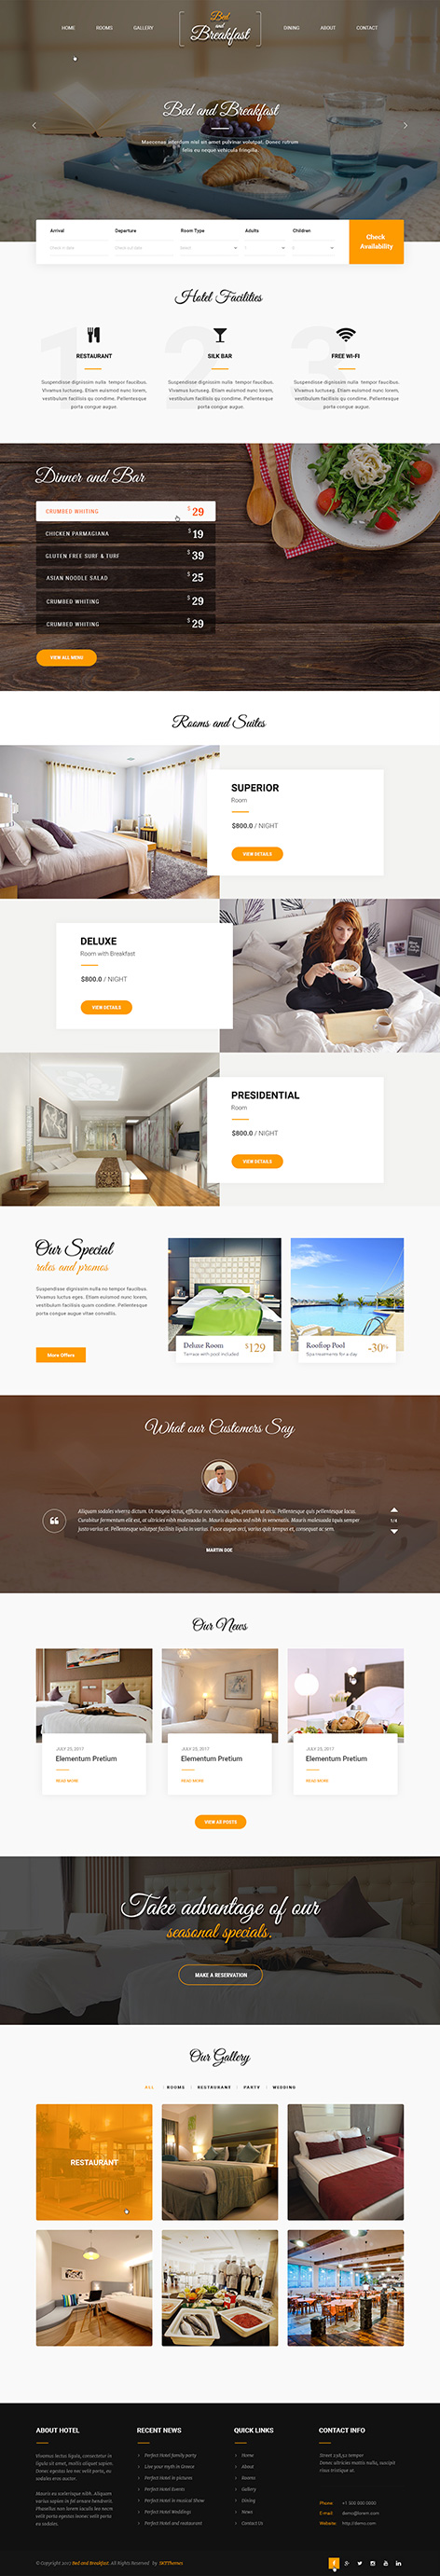 bed and breakfast wordpress theme1 - Bed and breakfast